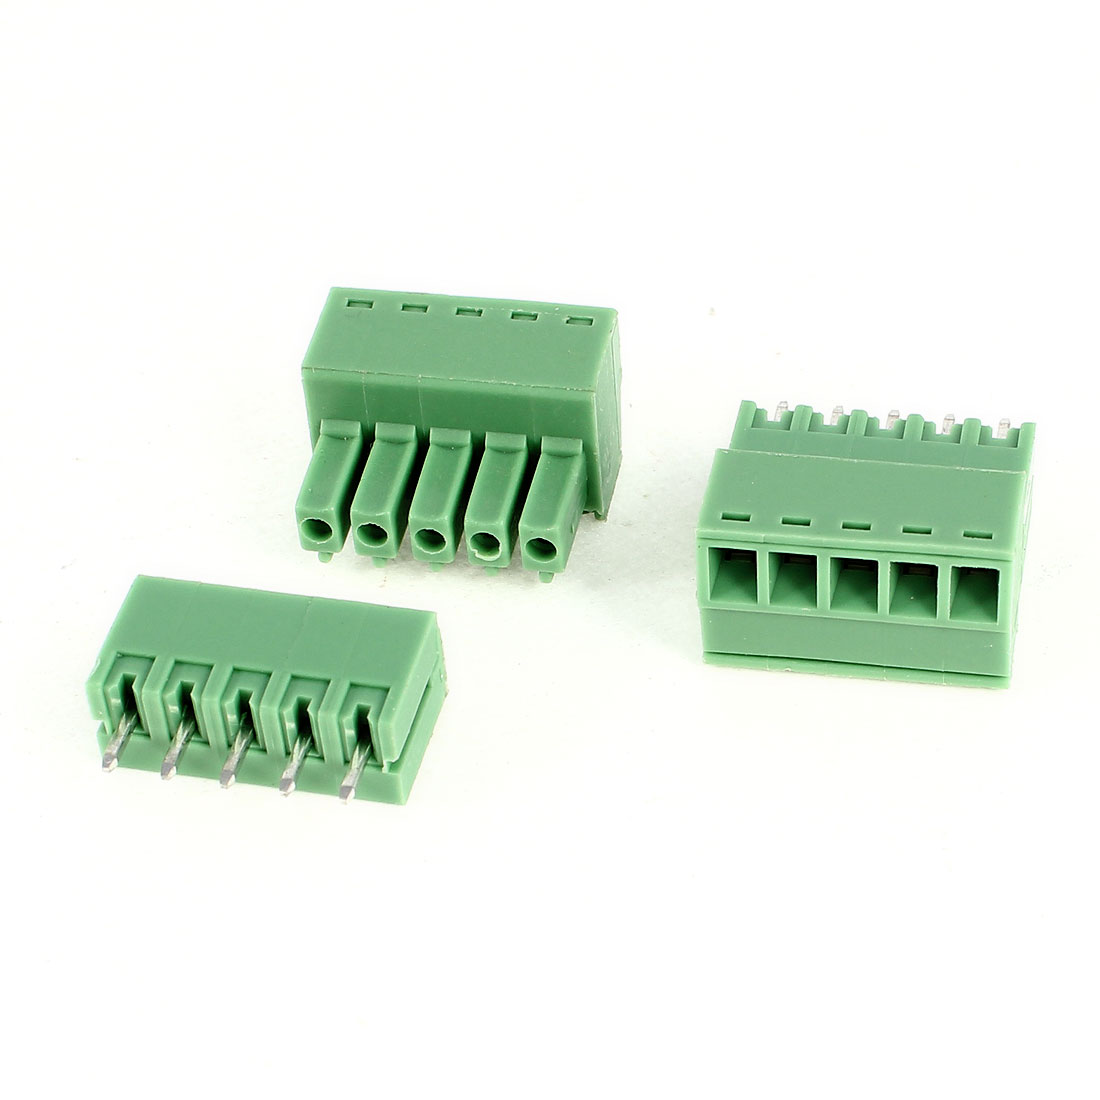 2Pcs 2EDG3.5-5P 3.5mm Pitch 5 Straight Pins Female and Male Wire Pluggable Terminal Barrier Strip Block Connector